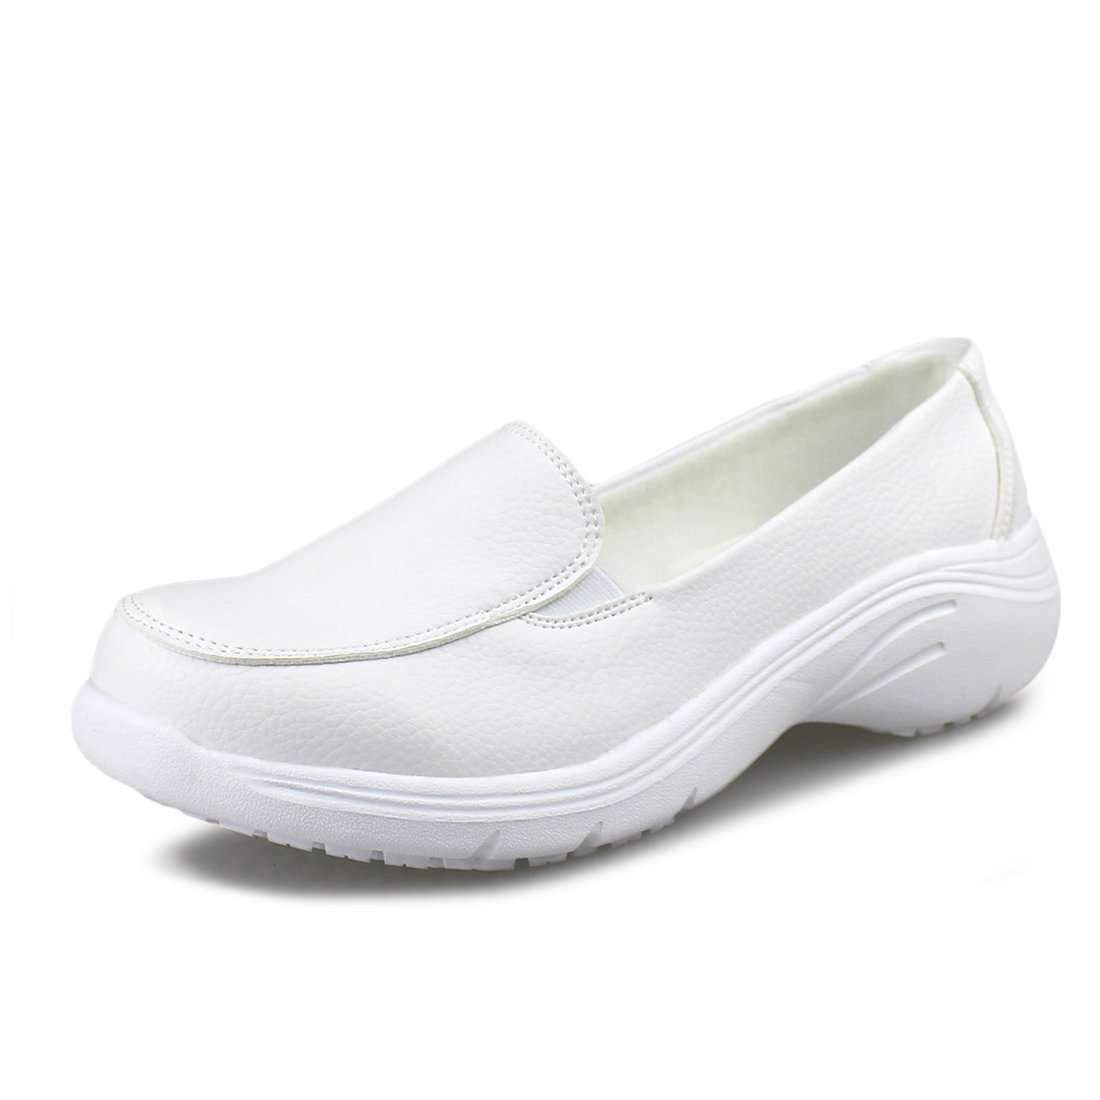 Hawkwell Women's Lightweight Comfort Slip Resistant Nursing Shoes,White PU,6 M US